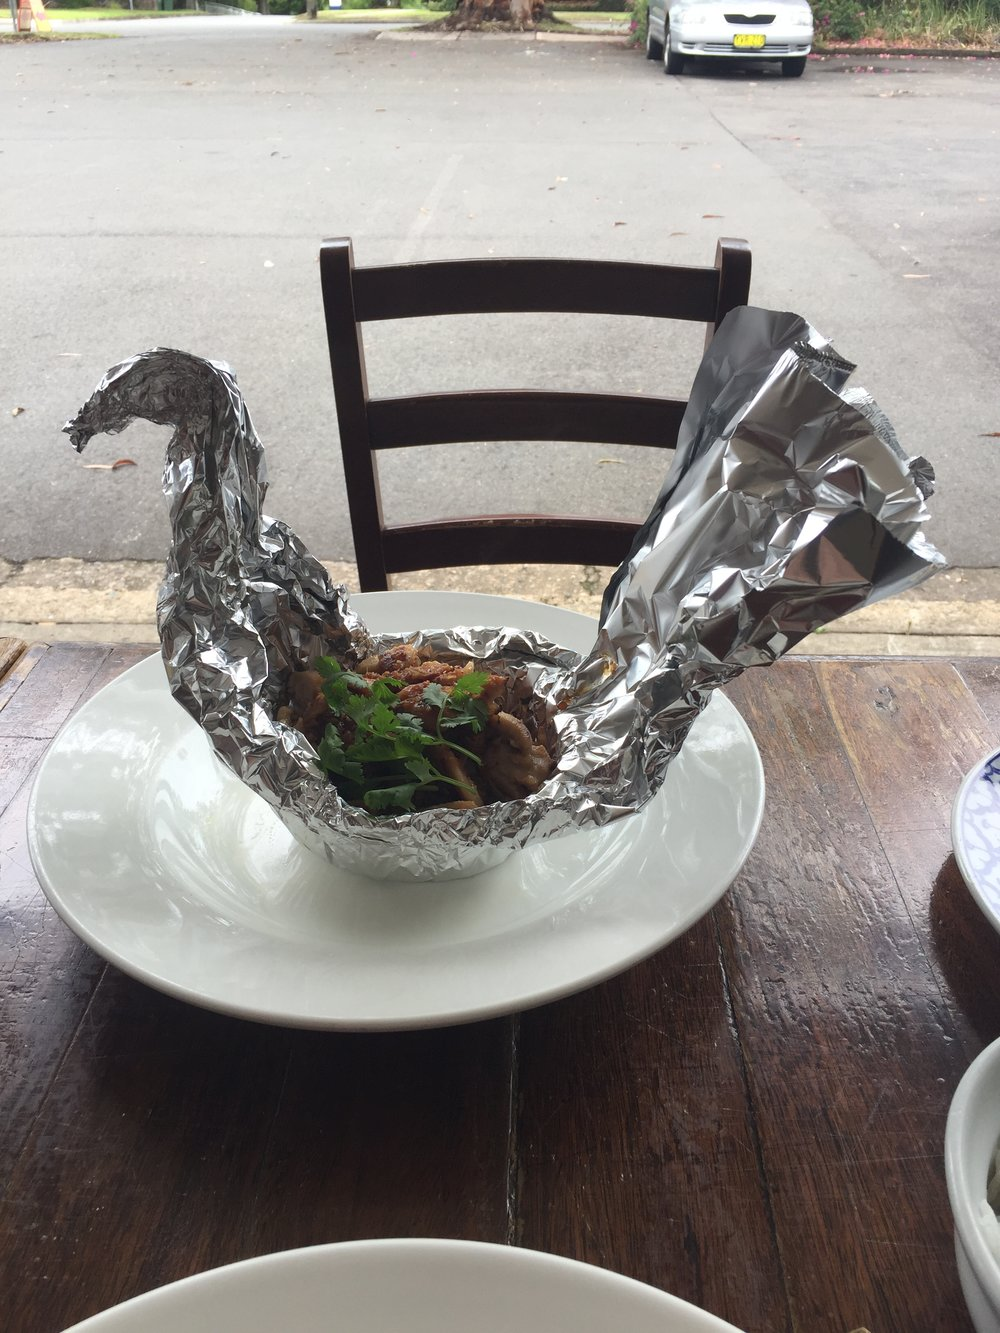 Volcanic Chicken, to go with my mood.